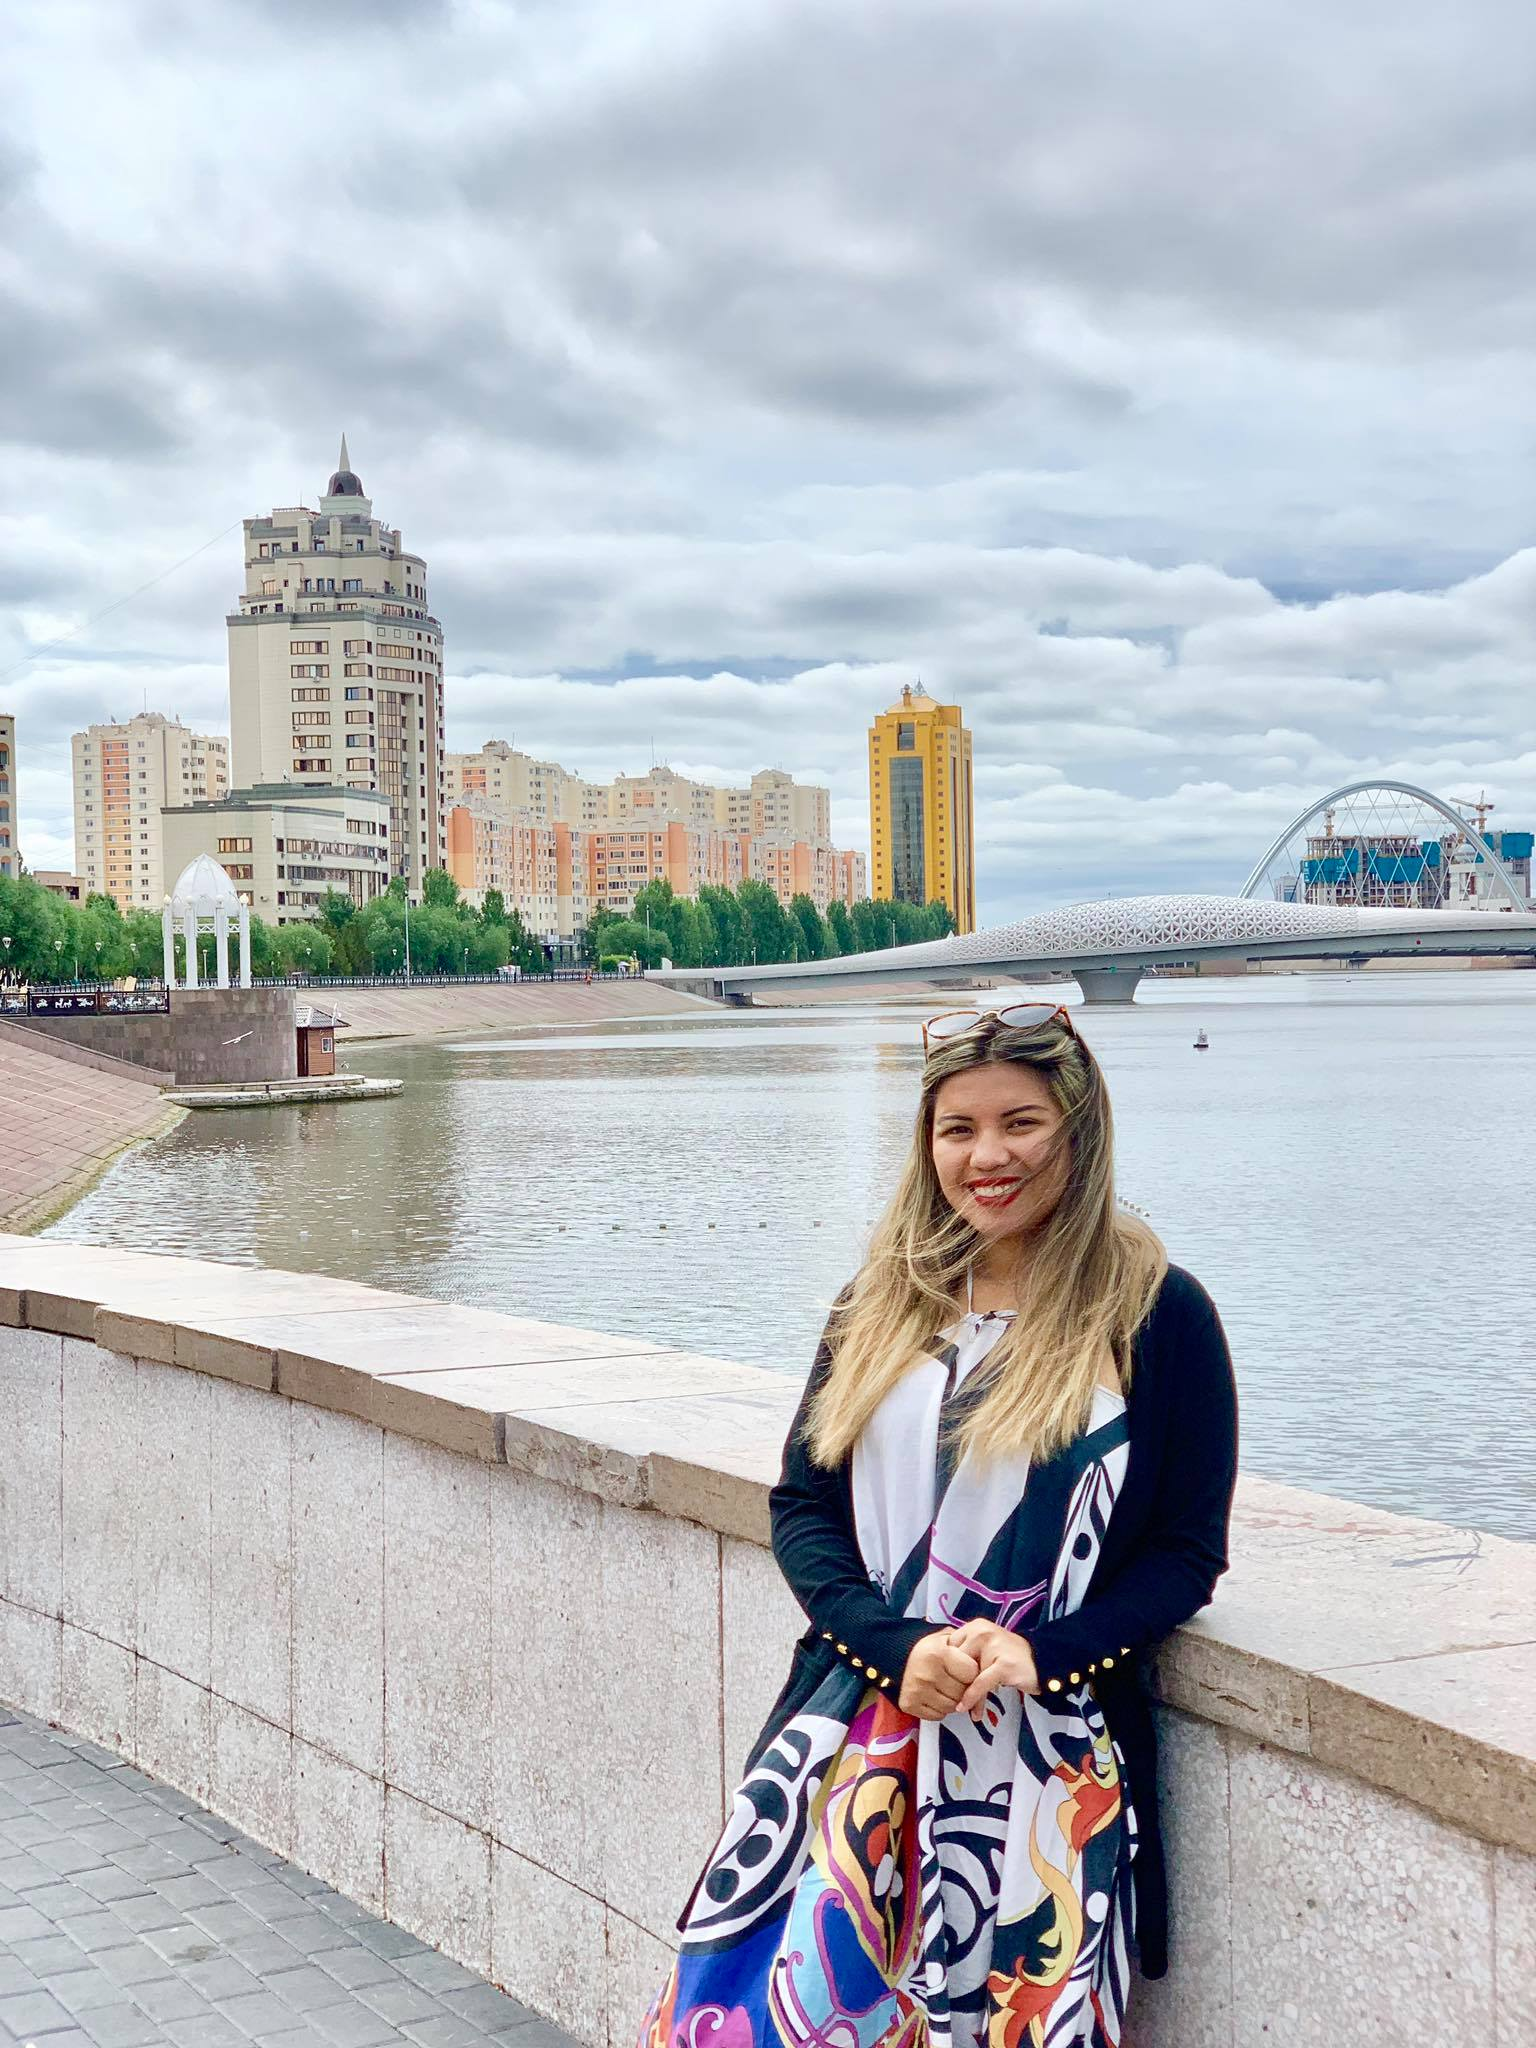 Kach Solo Travels in 2019 Nursultan  Astana - the City of the Future7.jpg